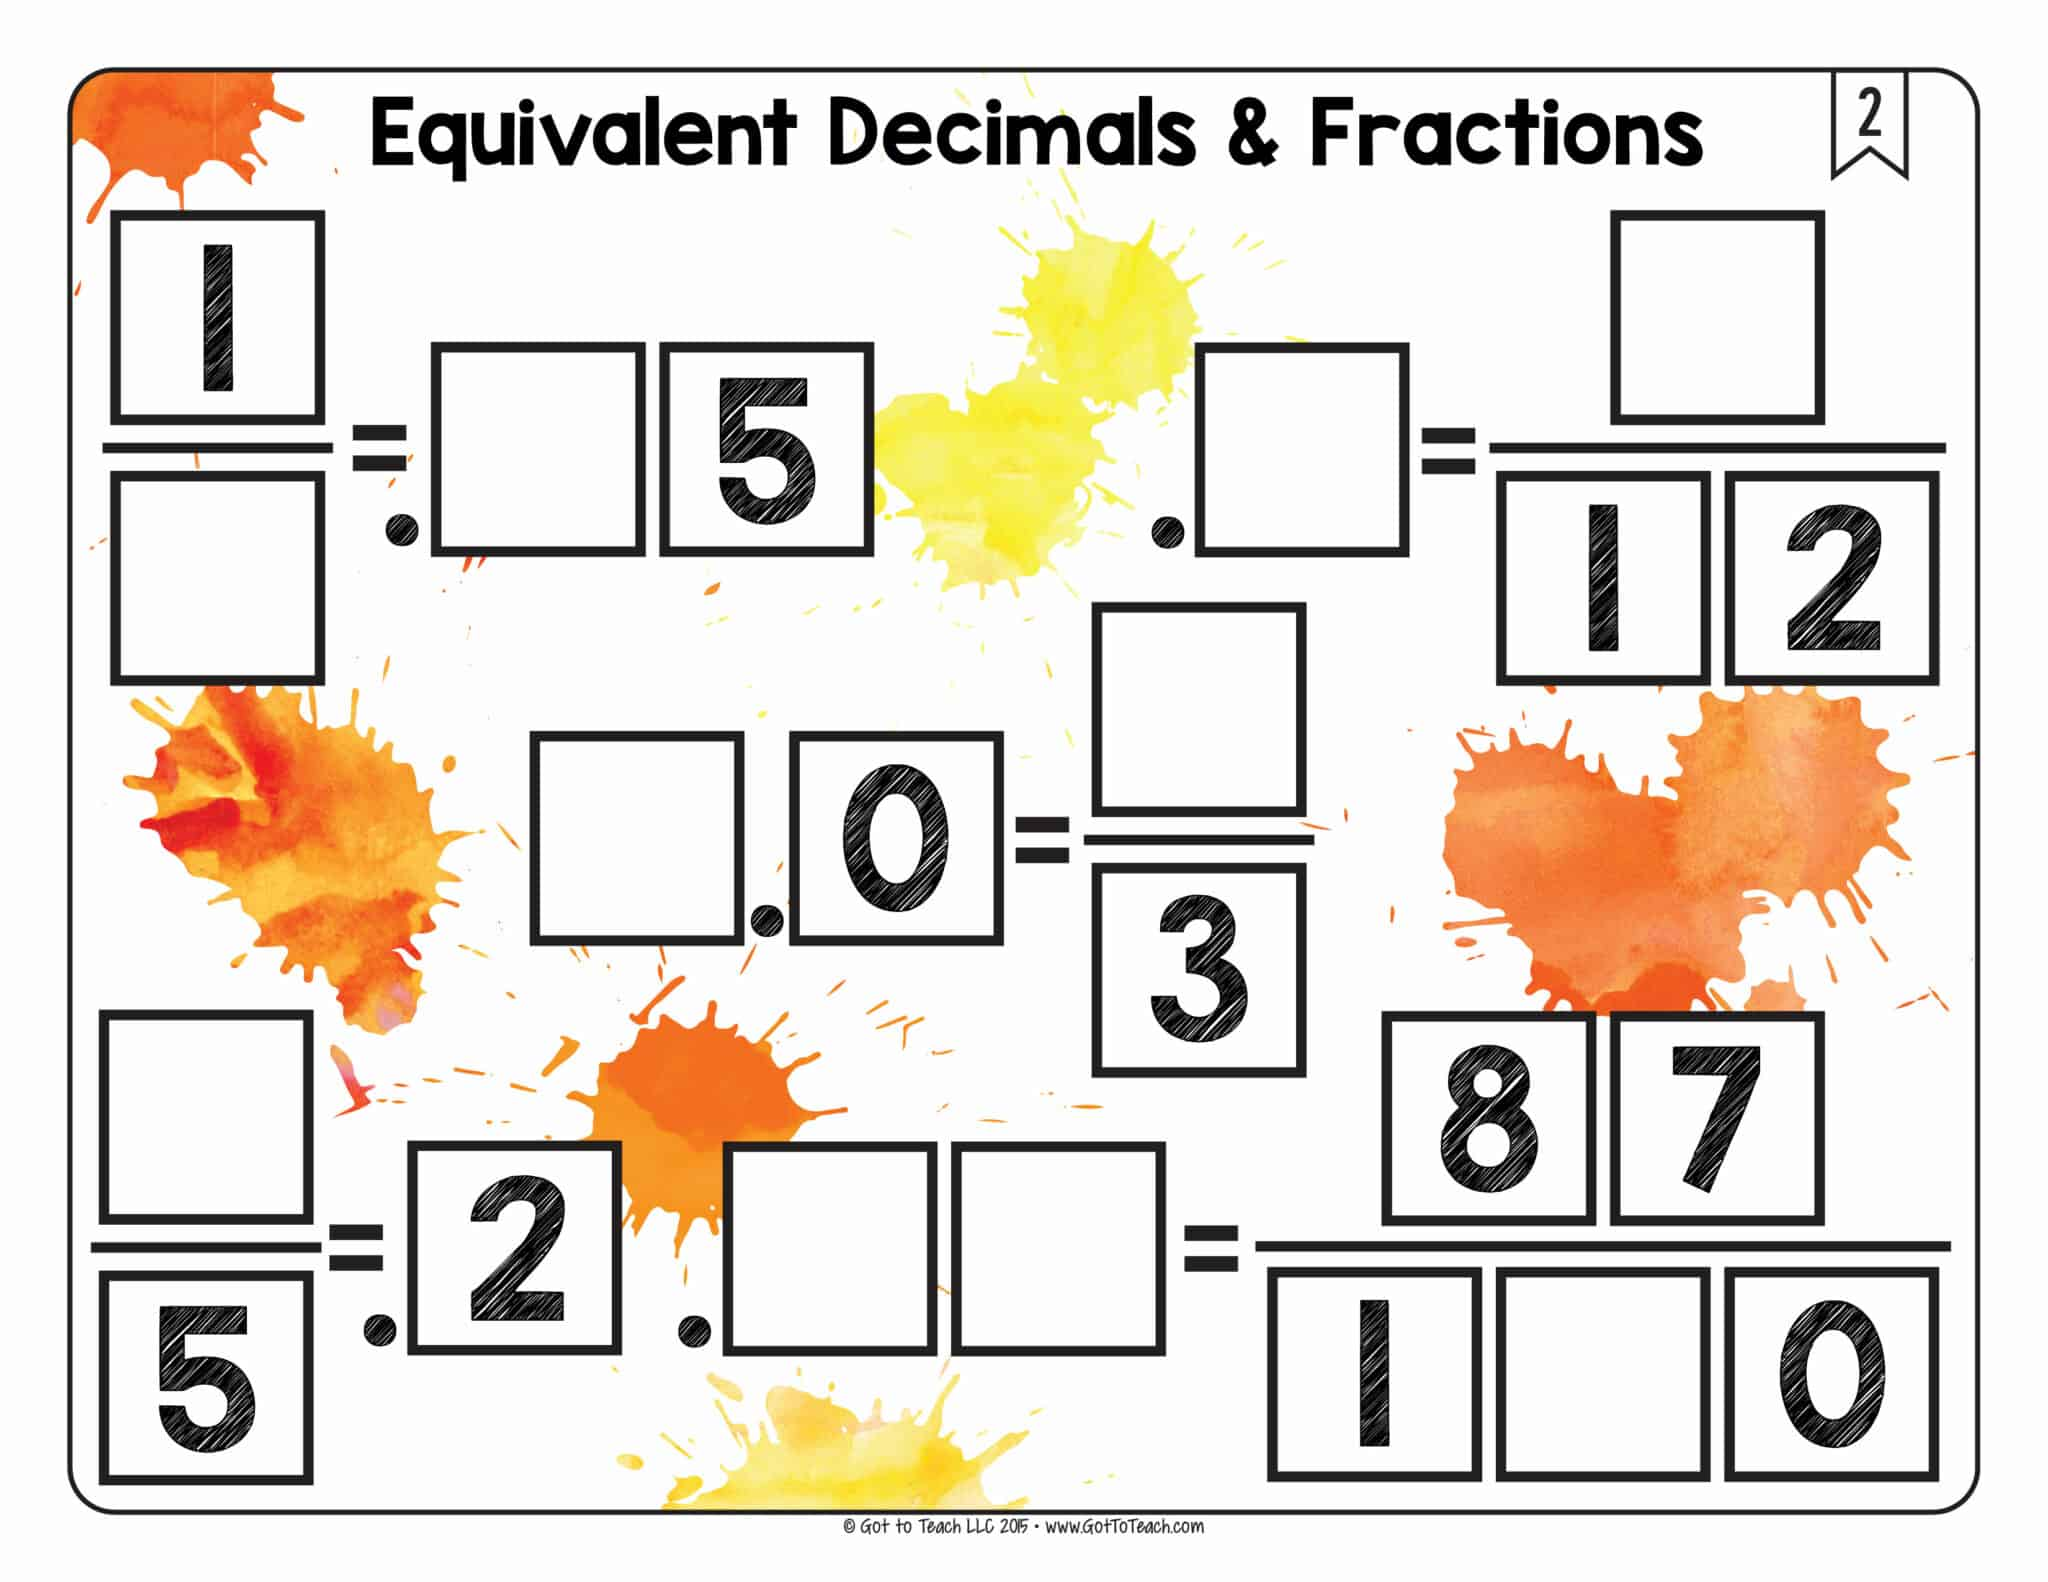 Equivalent Decimals and Fractions